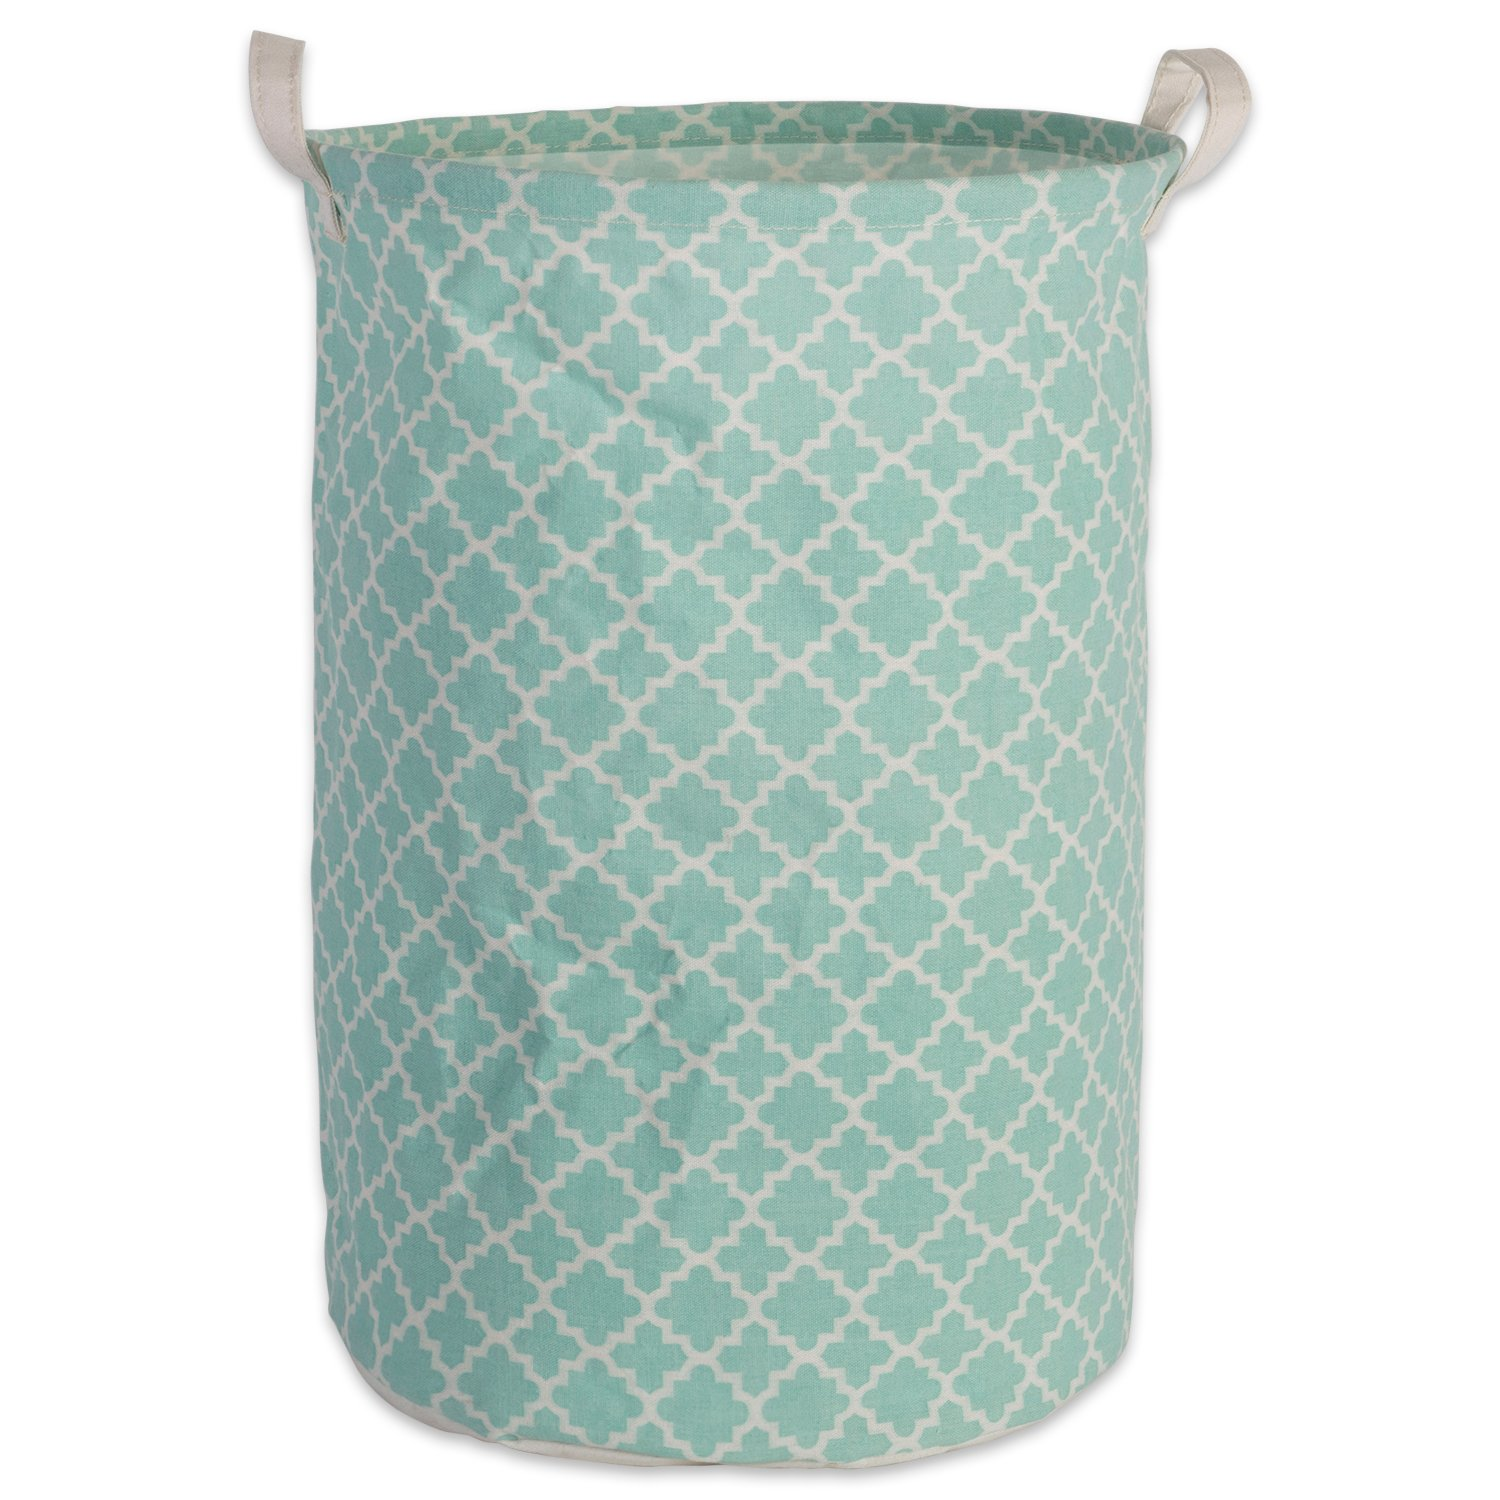 DII Cotton/Polyester Basket Laundry Hamper 13.75x13.75x20 Aqua Lattice